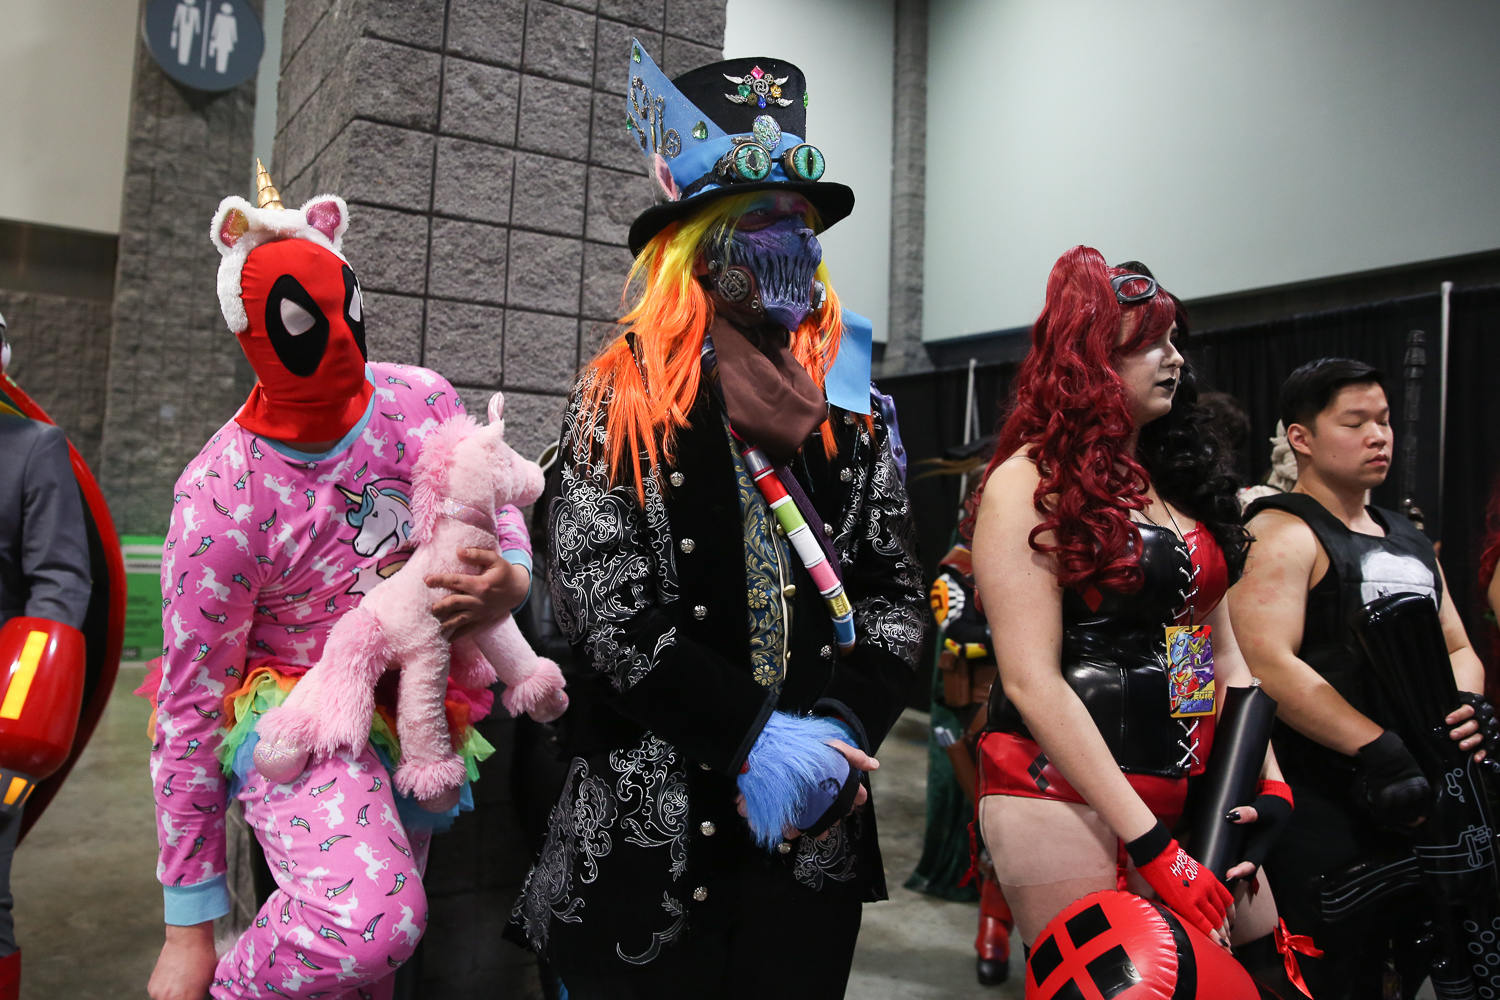 The final day of Awesome Con was a hit. Thousands of fans met their actors, tried out cosplay and bonded over their interests at the Walter E. Washington Convention Center. Here are our favorite photos from the day. (Amanda Andrade-Rhoades/DC Refined)